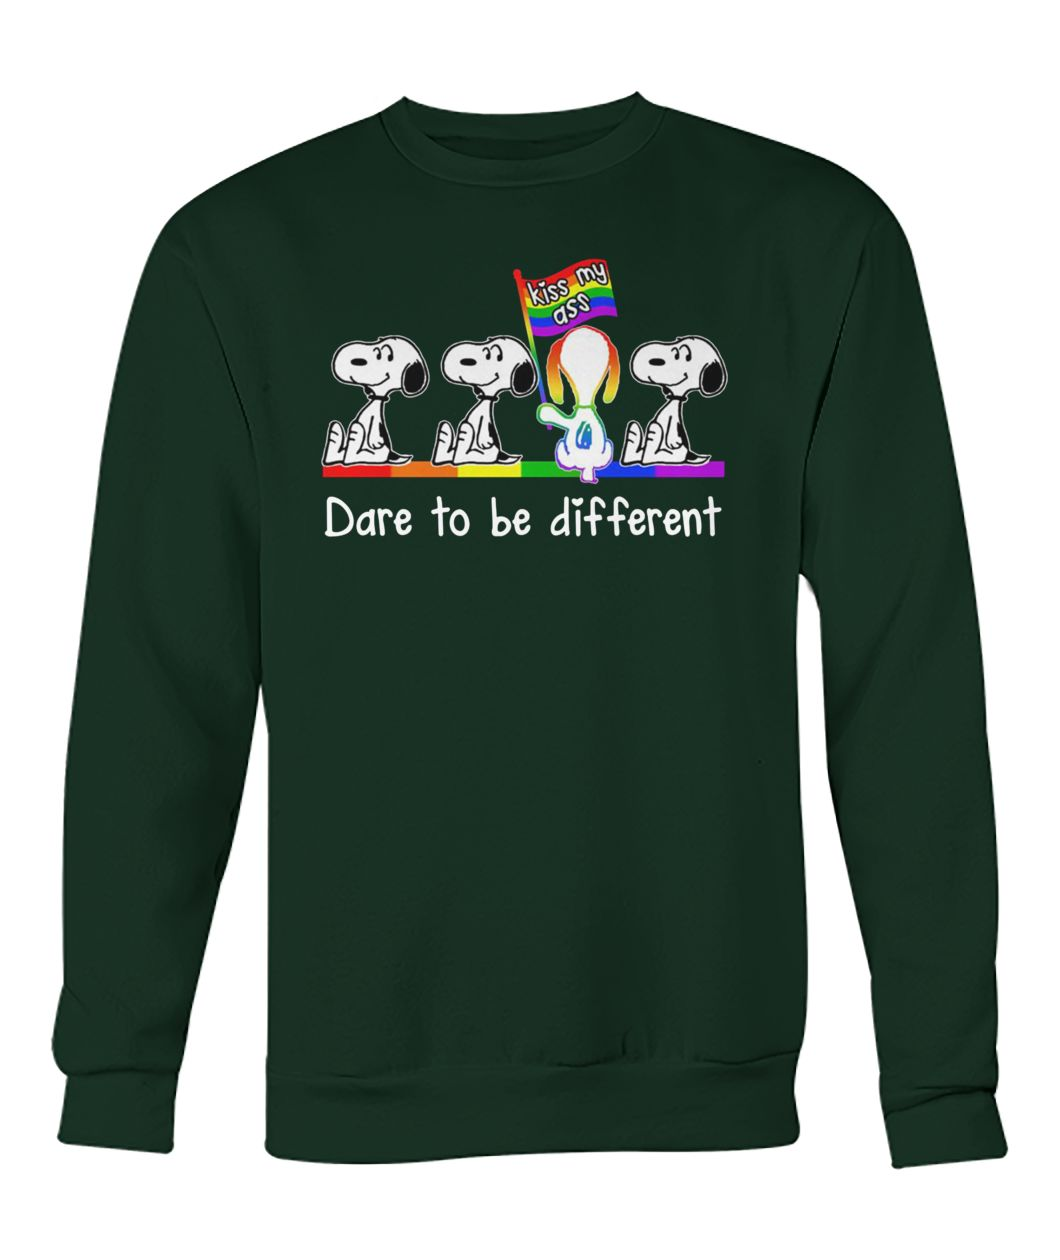 LGBT snoopy kiss my ass dare to be different crew neck sweatshirt